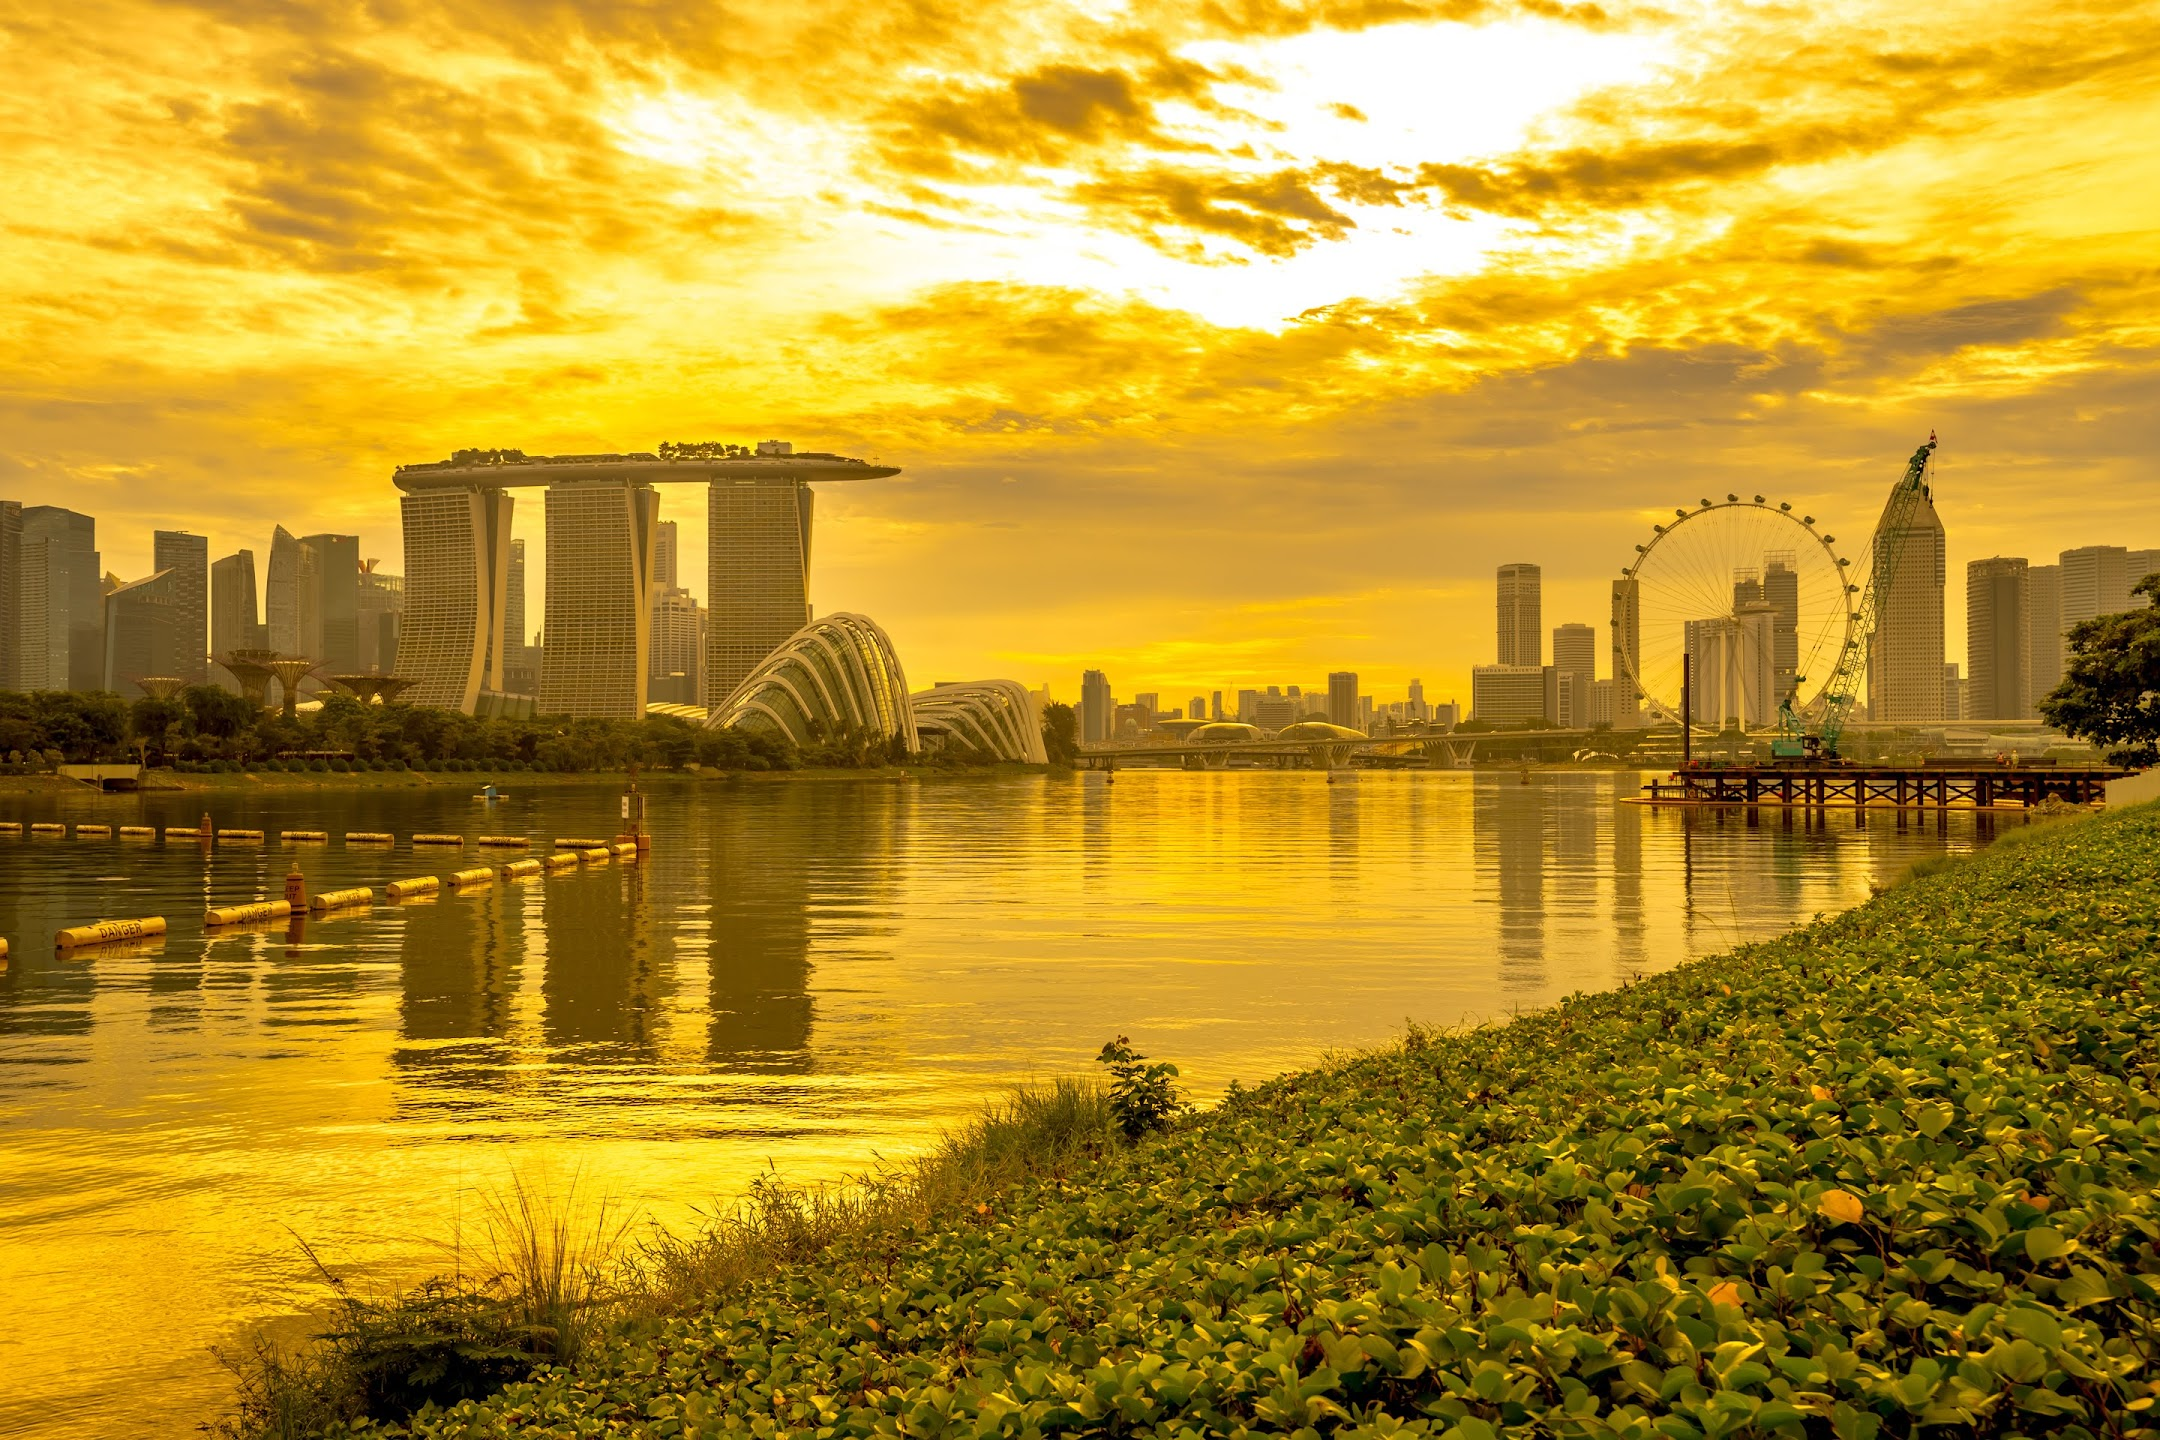 Singapore Marina Barrage evening3